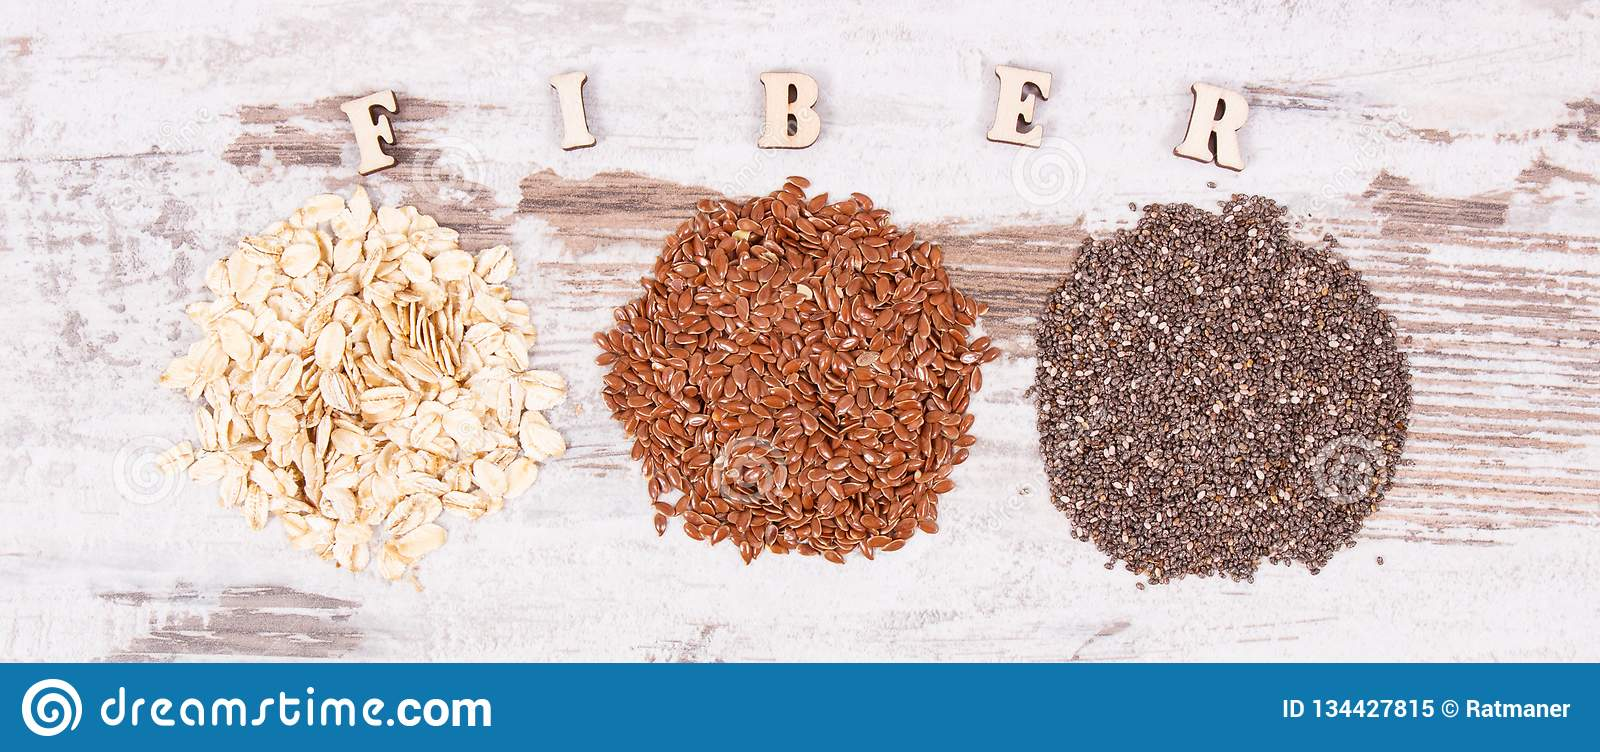 Ingredients as source natural vitamins and dietary fiber, healthy nutrition concept